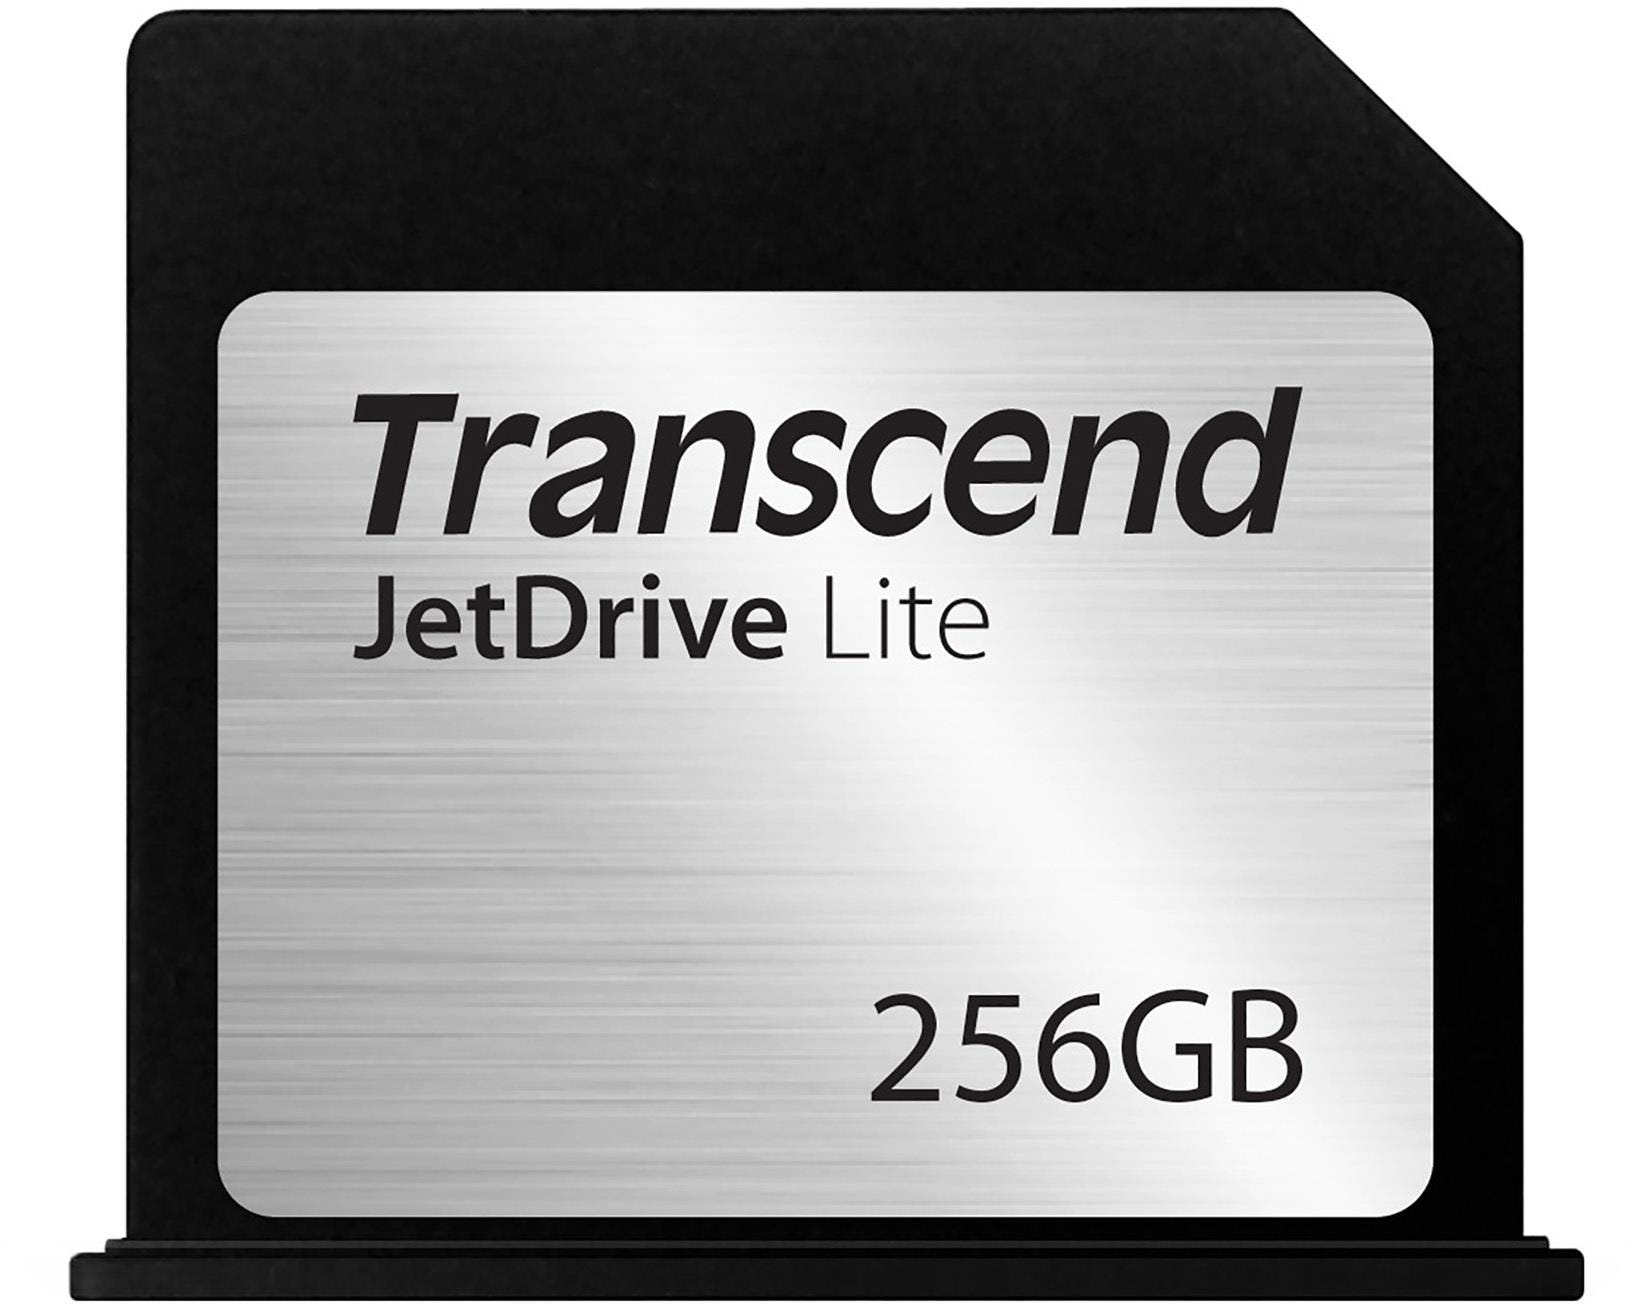 Transcend JetDrive Lite 130 256 GB Storage Expansion Card